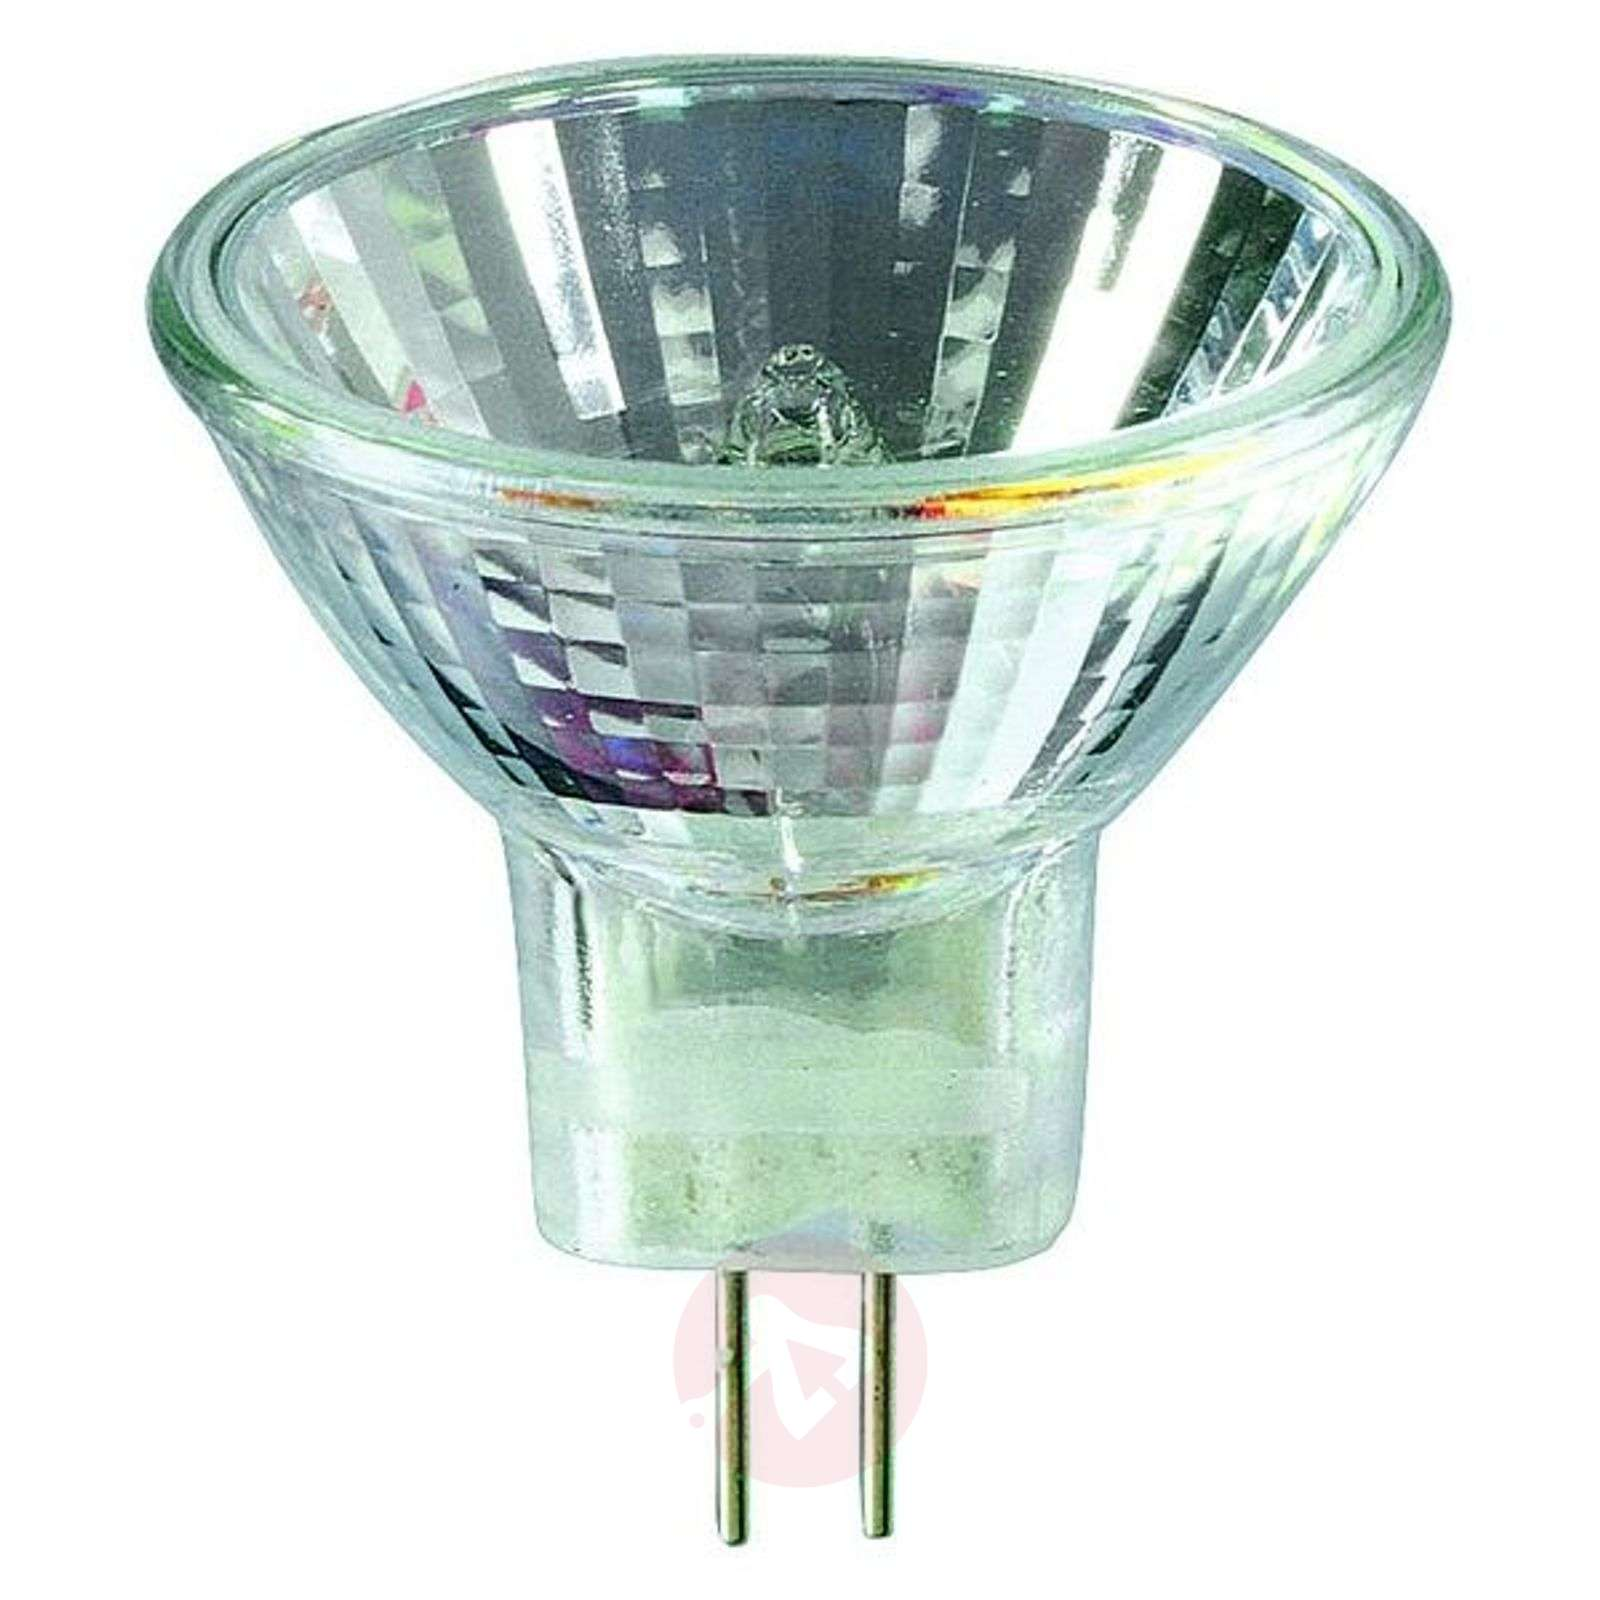 GU4 MR11-reflectorlamp 10-35W 12V 36 gr OSRAM-7260225X-01